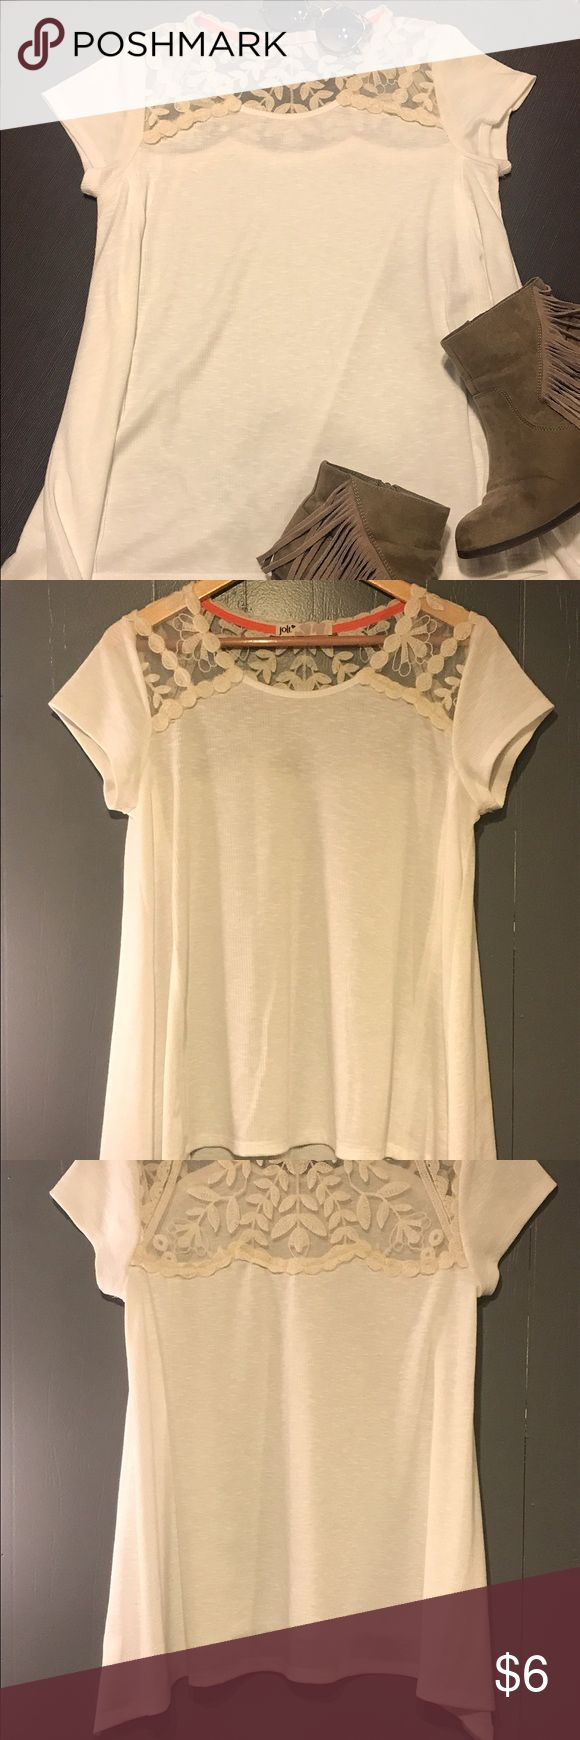 Ivory Lace Short Sleeve Top Never Worn! ADORABLE casual t-shirt that's super comfy with a loose fit. Pair it with some cowgirl boots and a mini skirt and you're ready to get rowdy! 🍻🐴 Jolt Tops Tees - Short Sleeve